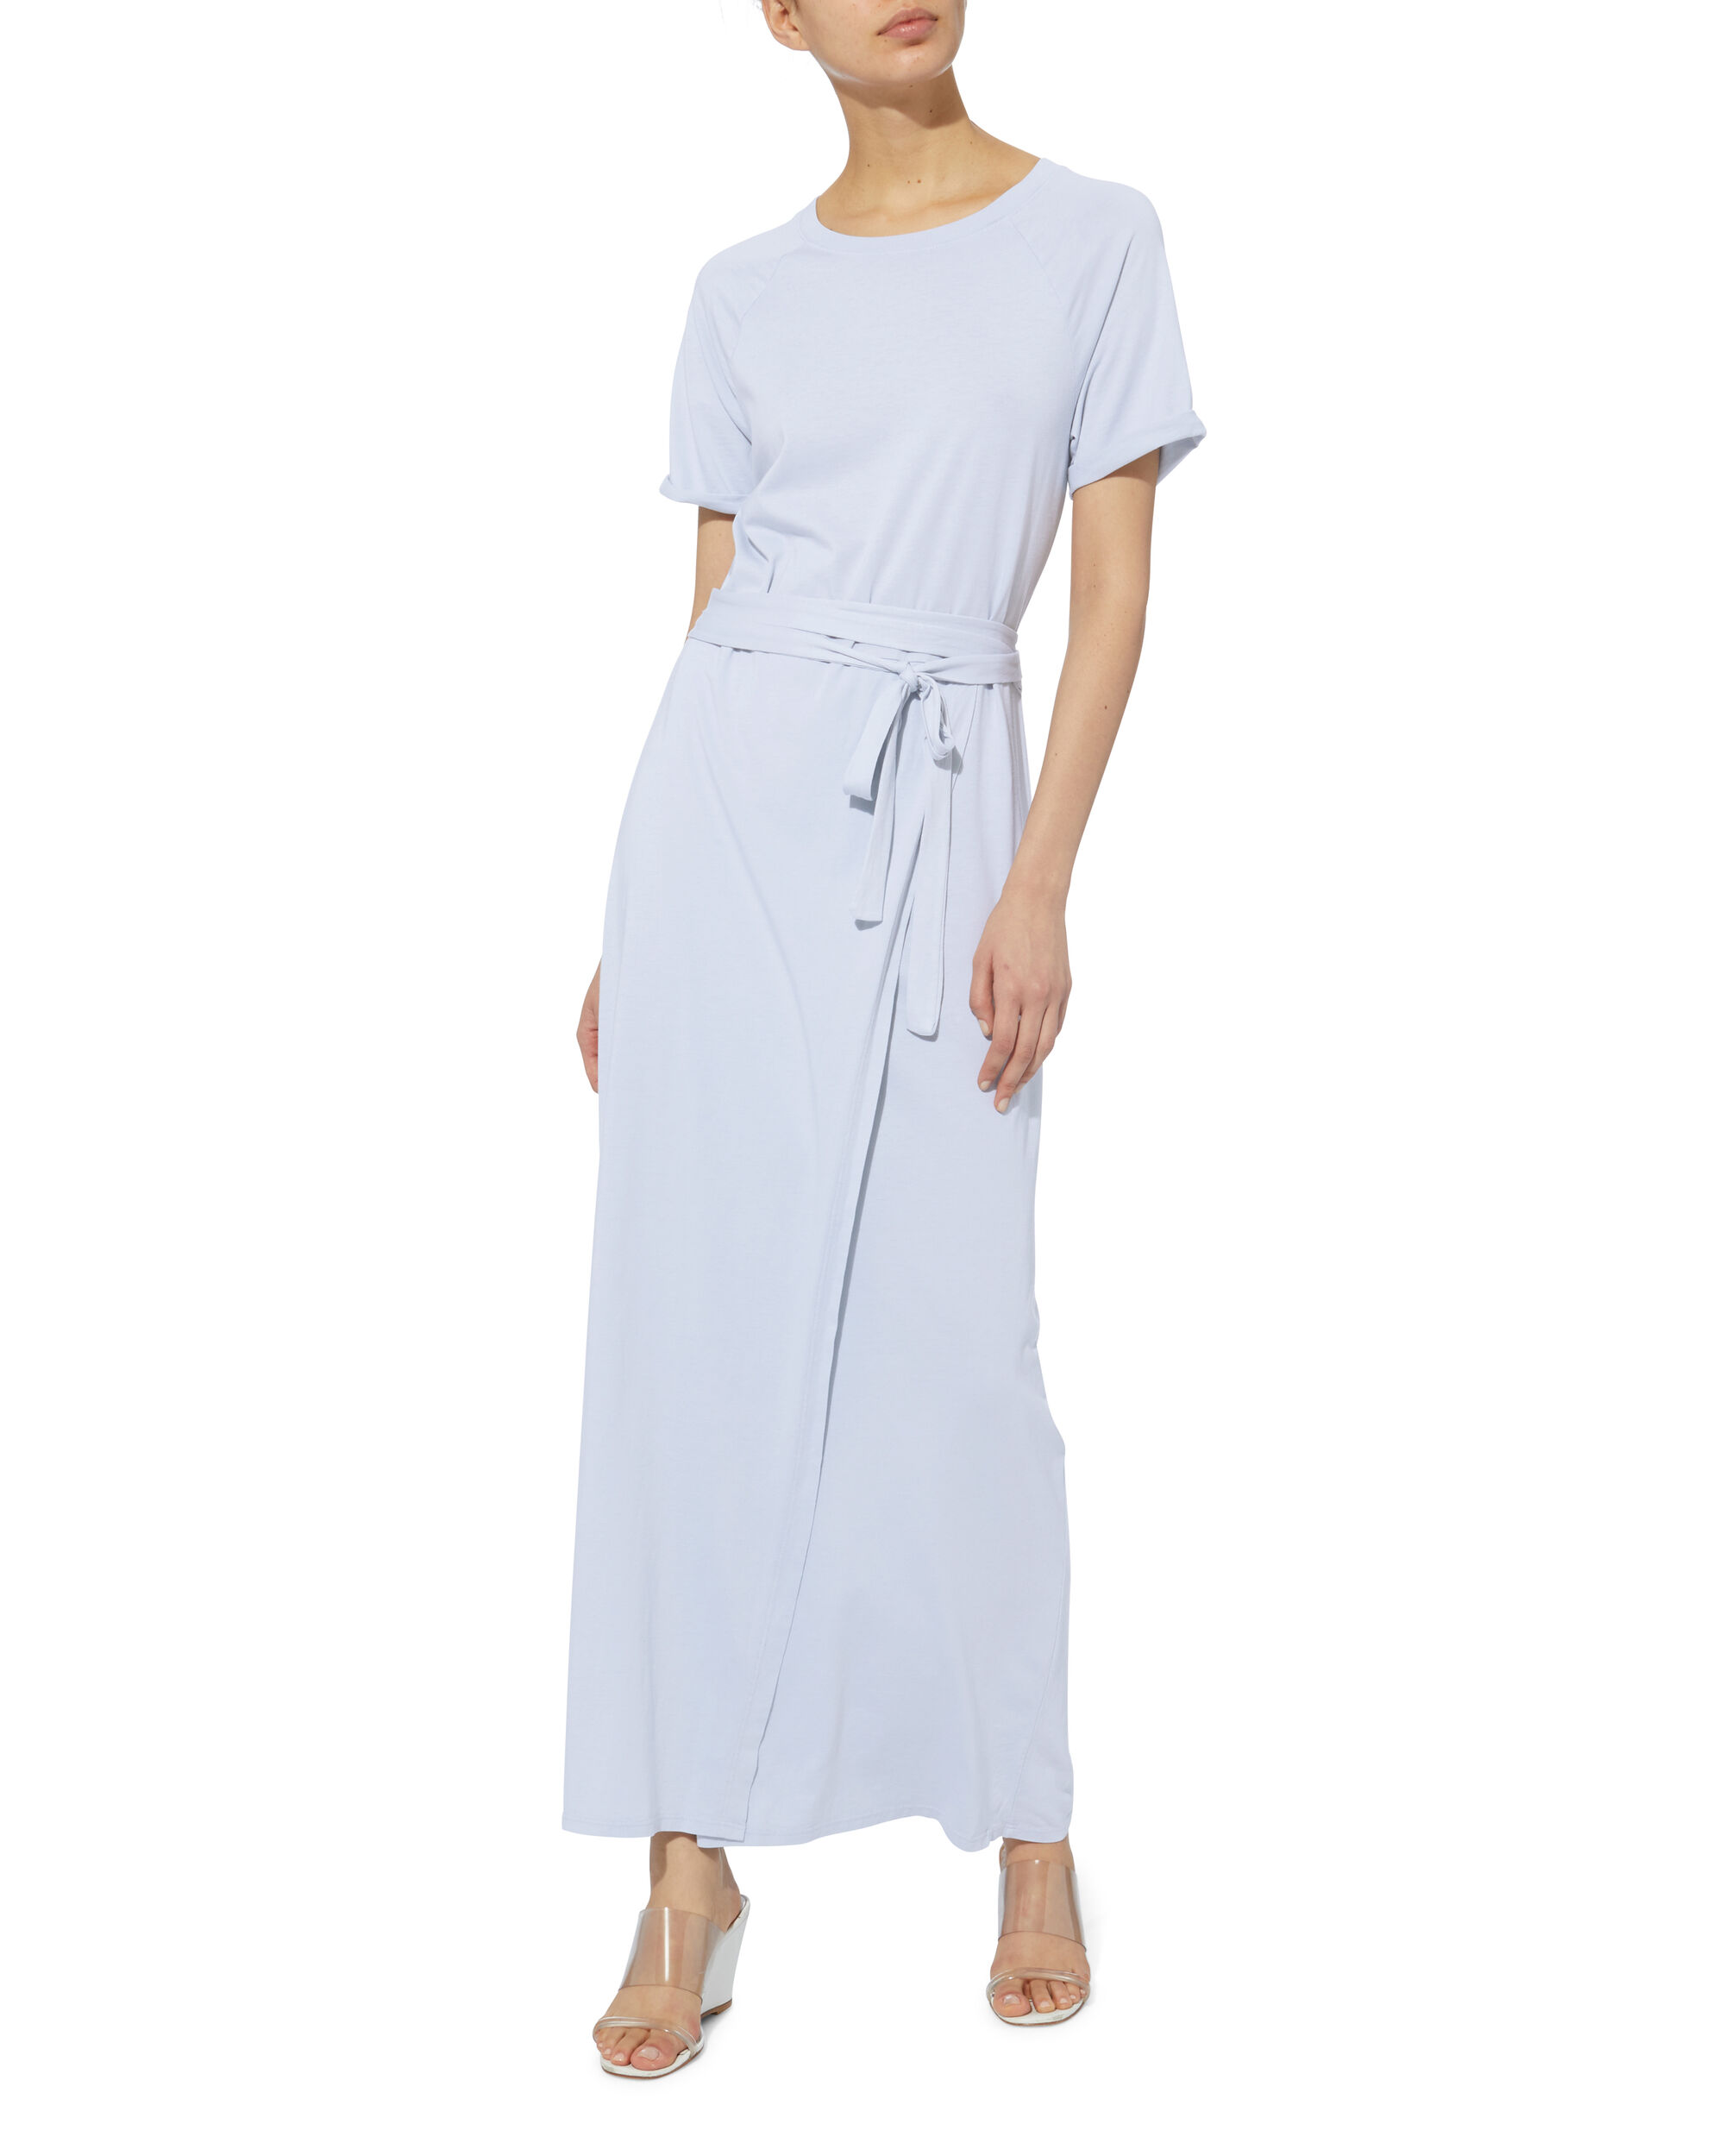 Welles Cotton Midi Dress, WHITE, hi-res